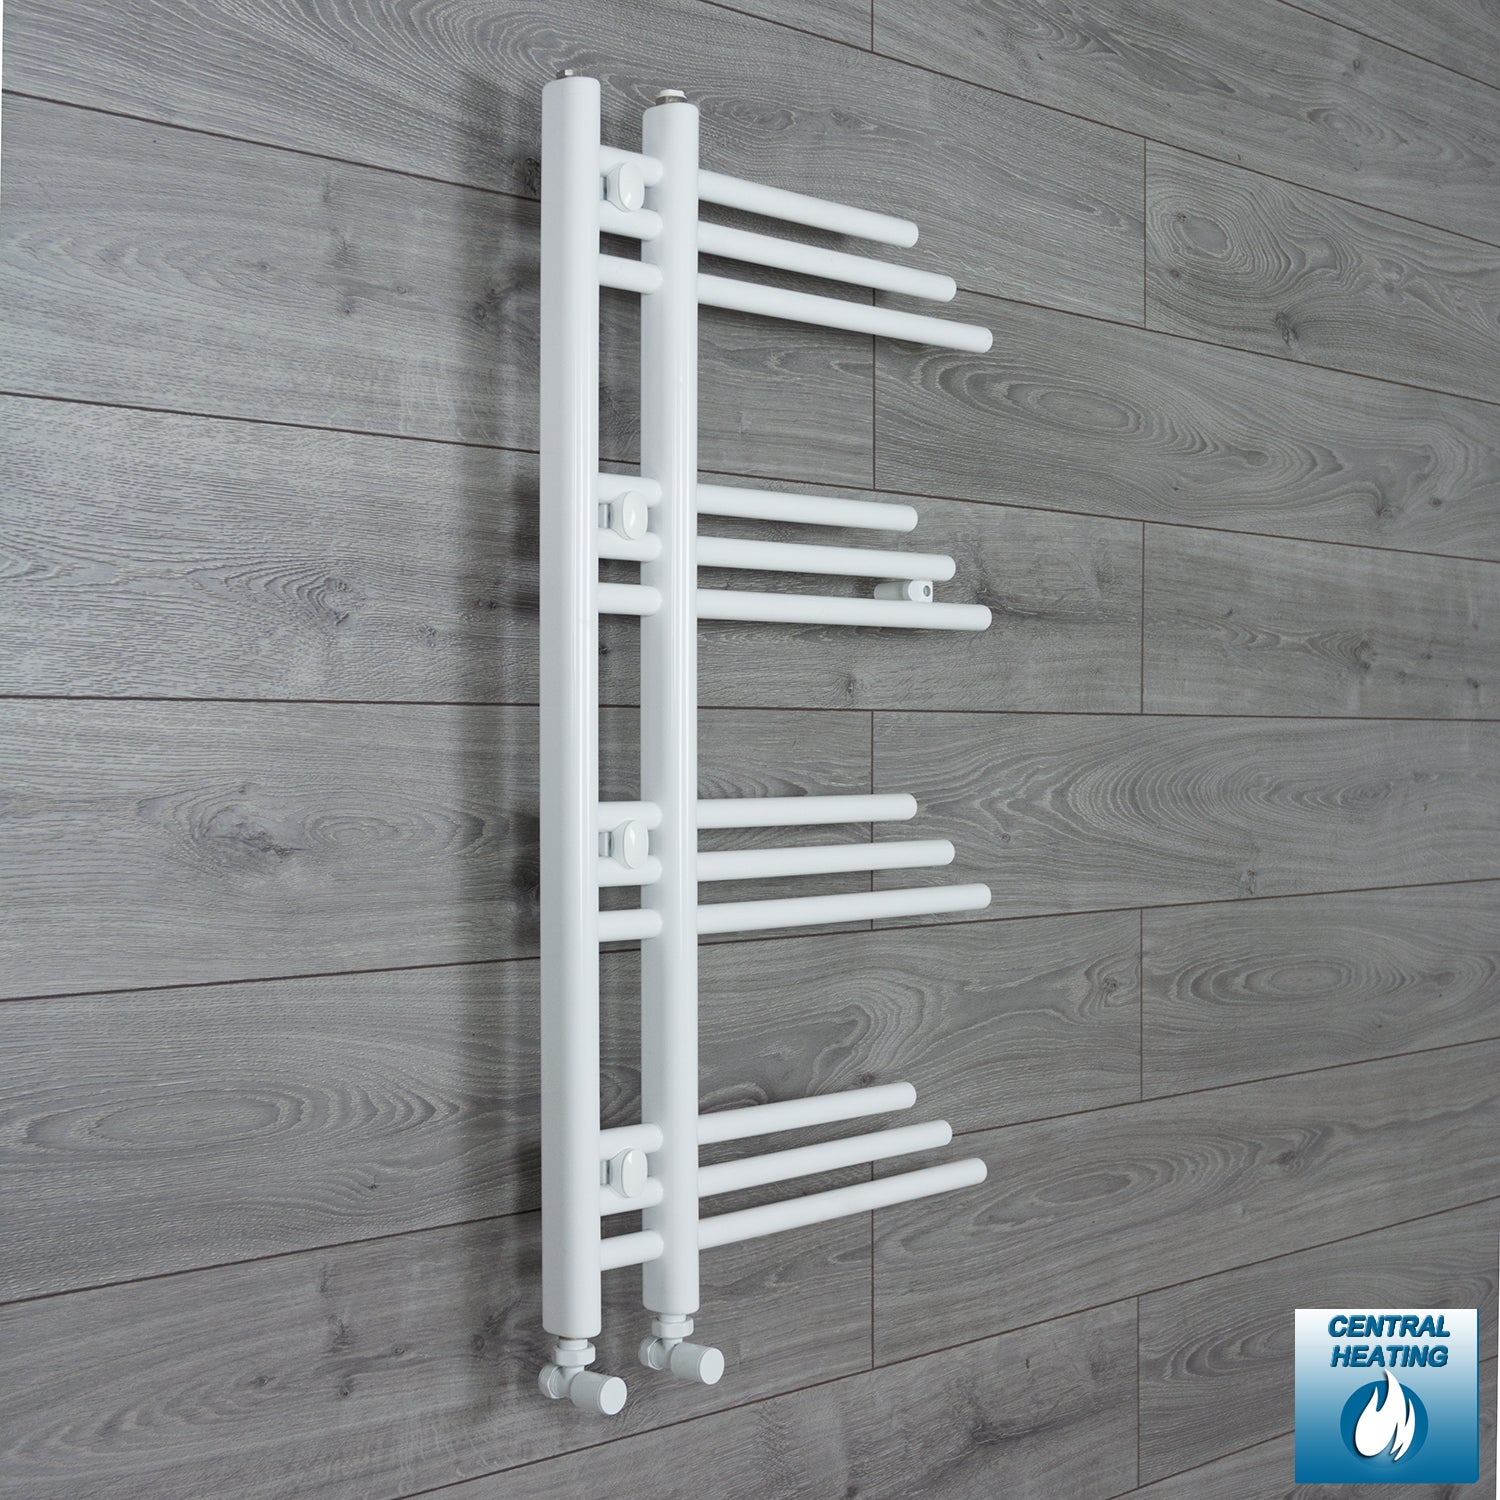 500mm Wide 900mm High Designer Flat White Heated Towel Rail Radiator Gas or Electric,With Angled Valve